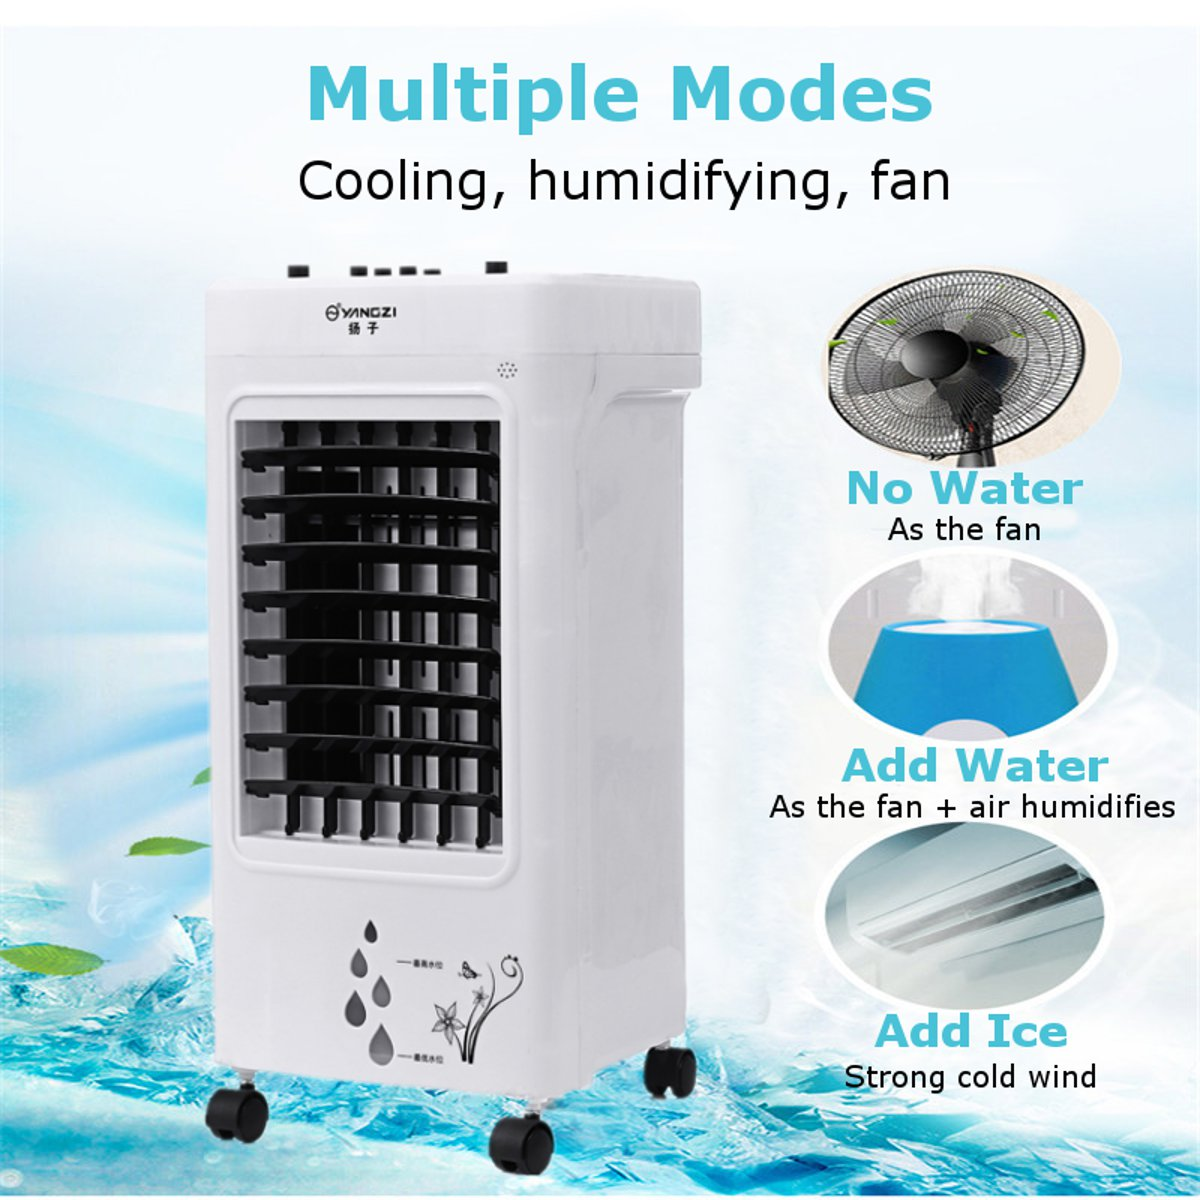 220V 3 Level Portable Air Cooler Fan Portable Handle Desk Electric Fan Mini Air Conditioner Device Cool Soothing Wind Home 60W